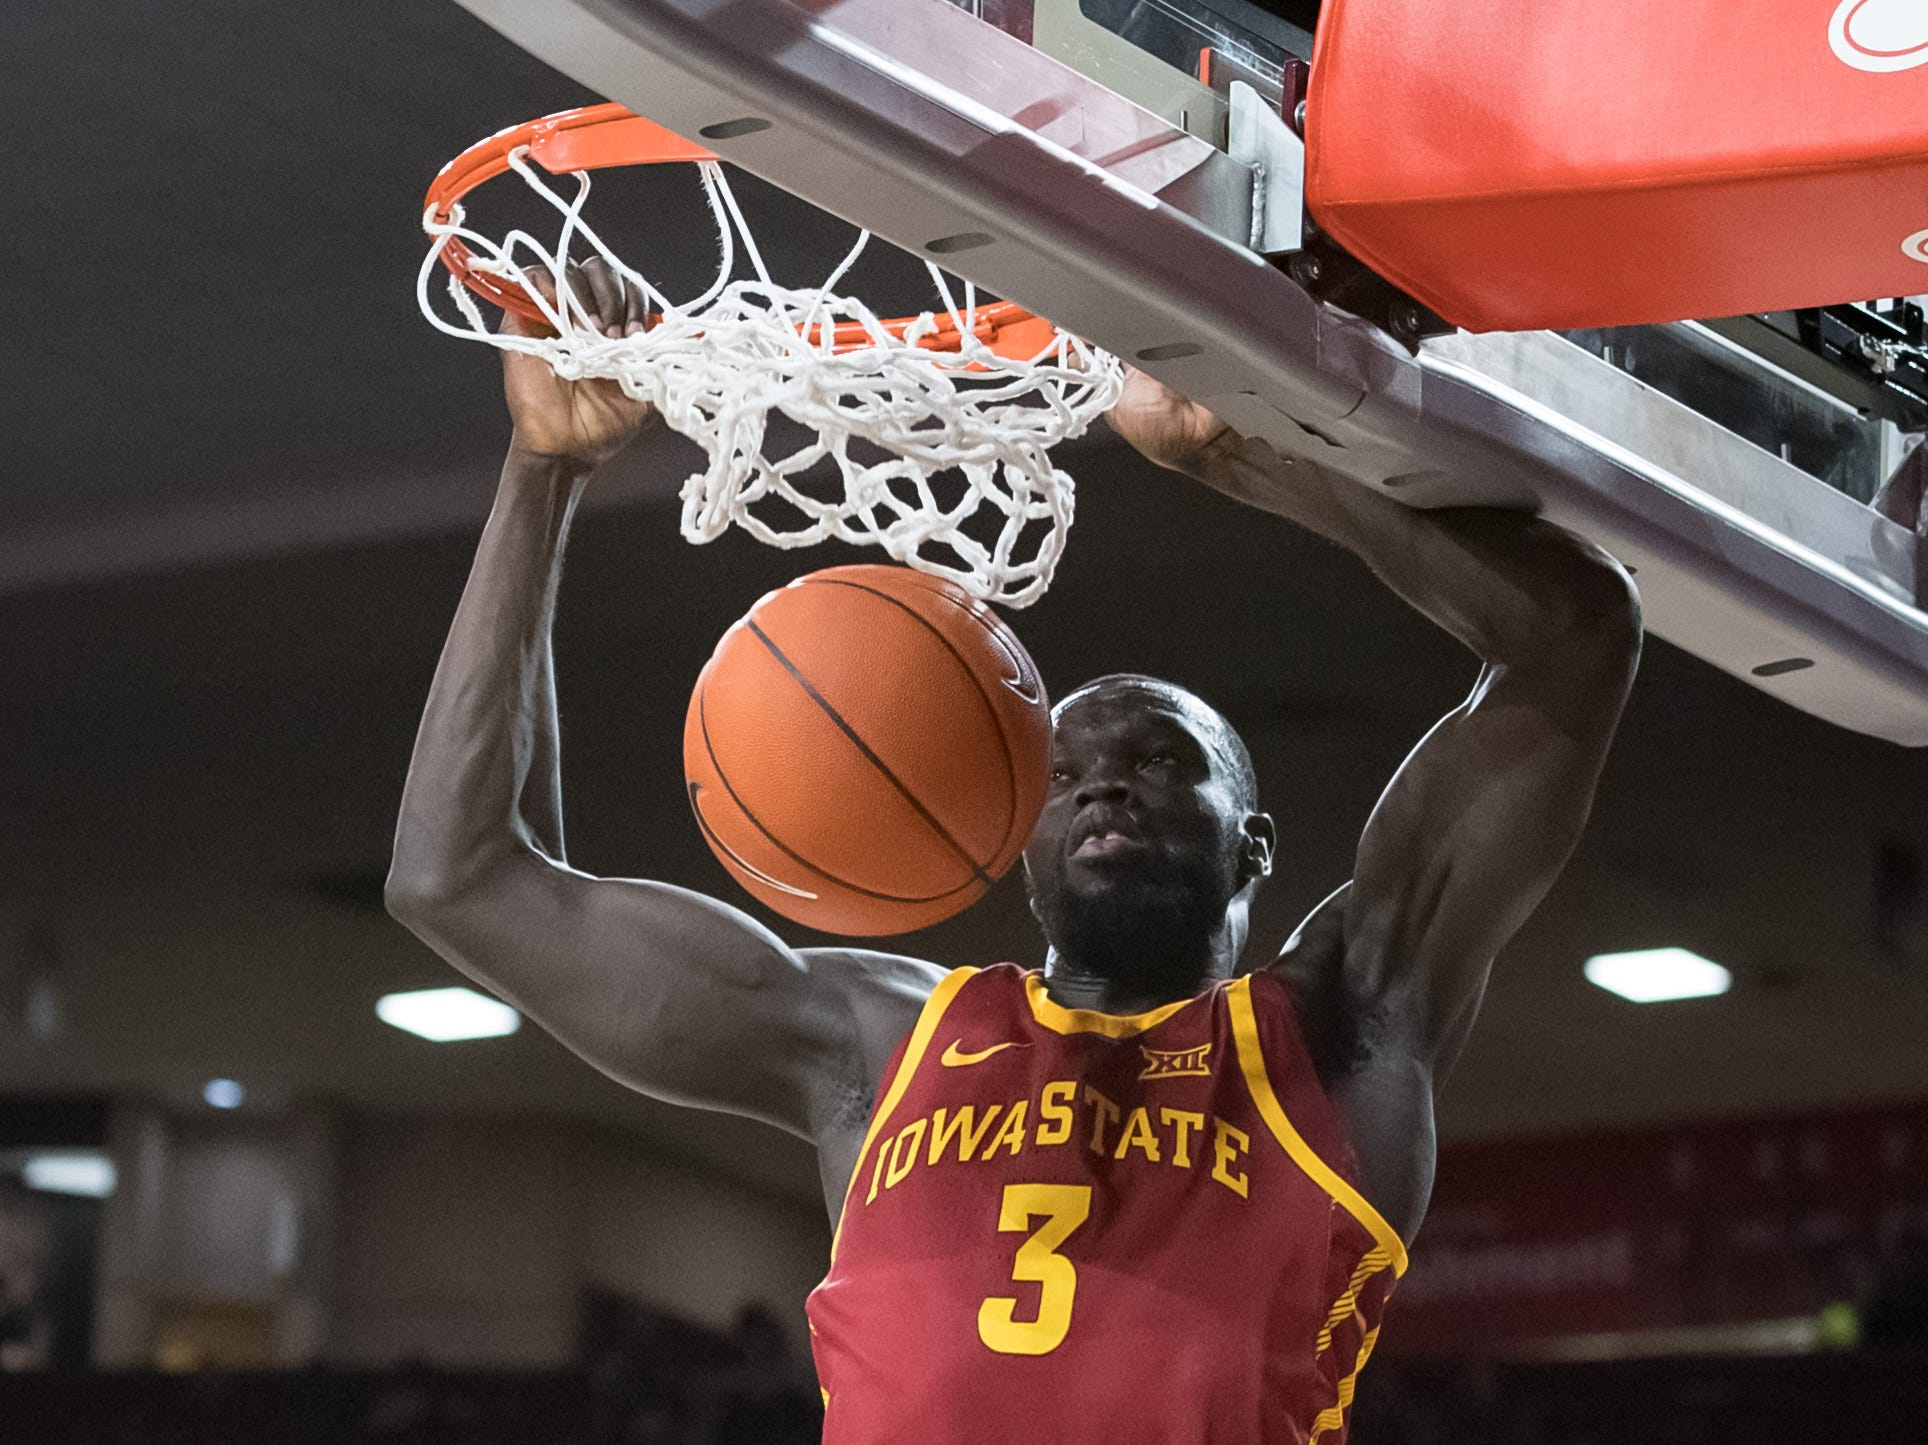 Iowa State Cyclones guard Marial Shayok (3) dunks the ball against the Oklahoma Sooners during the first half at Lloyd Noble Center.